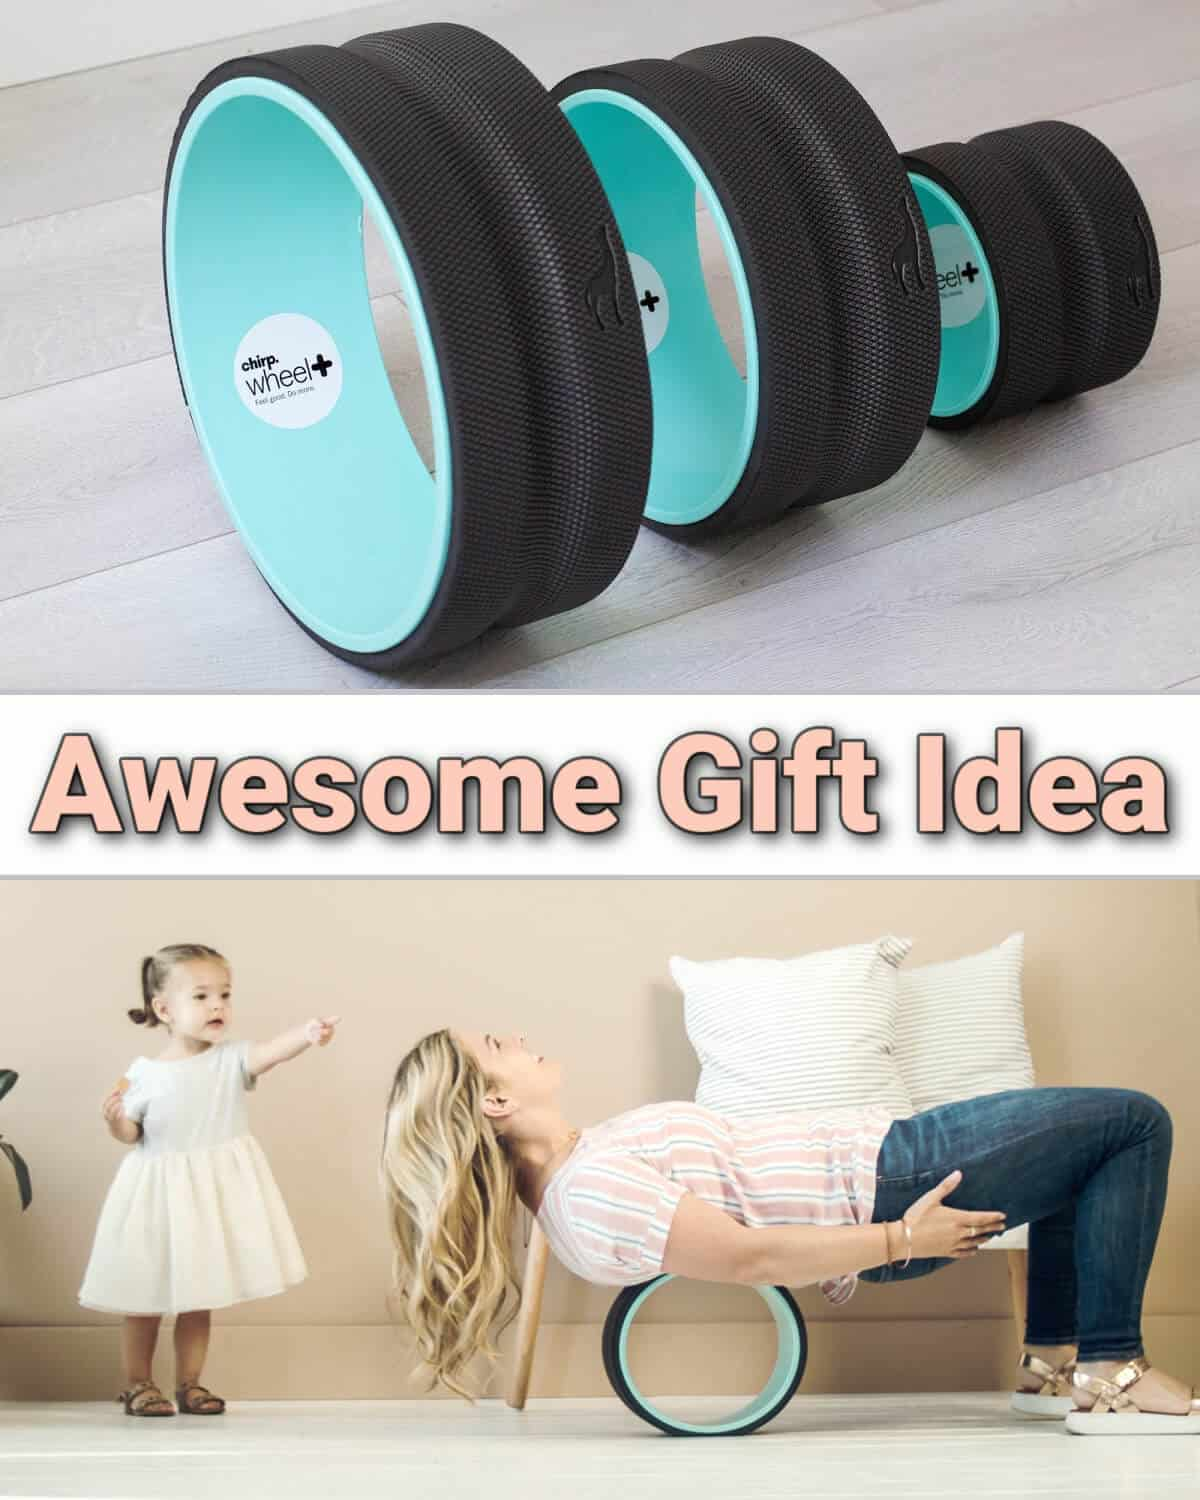 Awesome Gift Idea Chirp Wheel